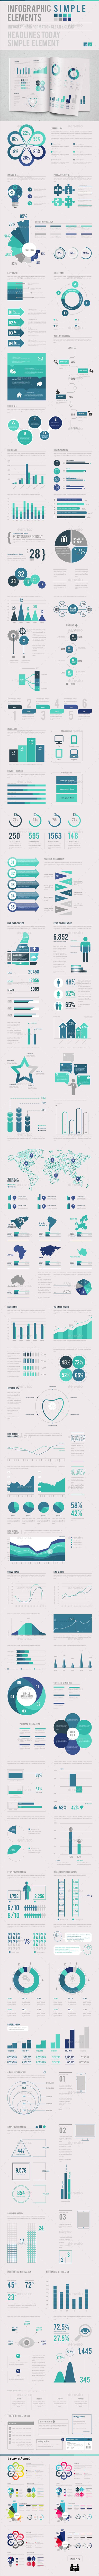 Avesome Infographic Simple Elements Template #design Download: http://graphicriver.net/item/infographic-simple/9869994?ref=ksioks